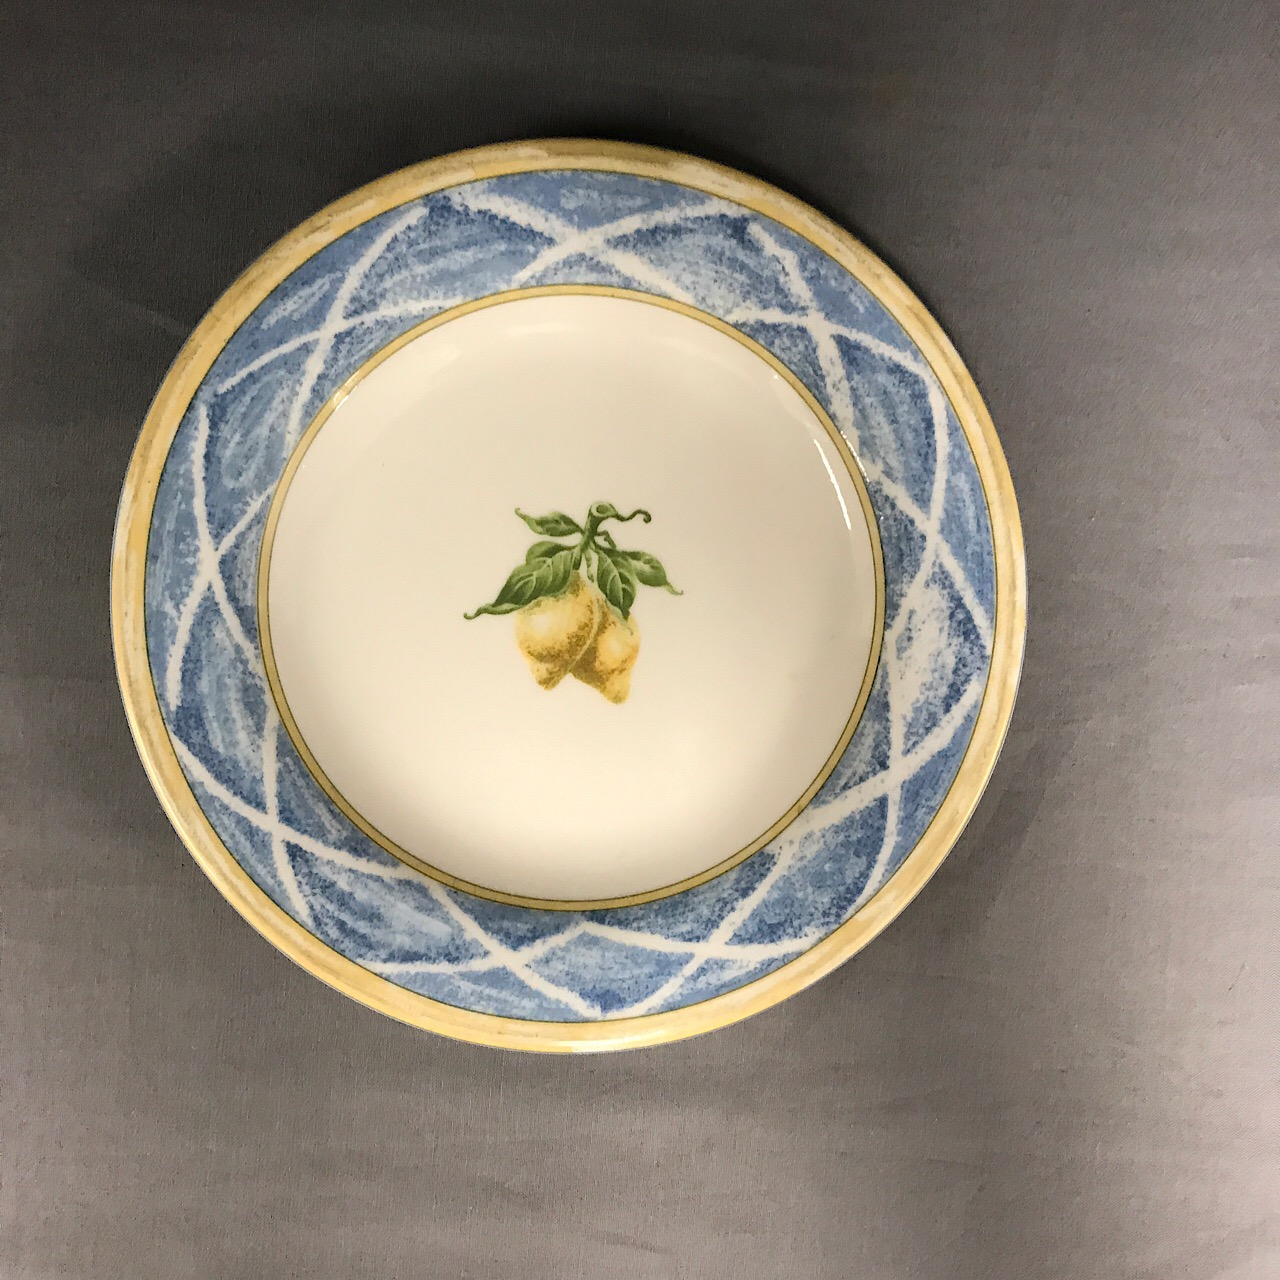 Royal Doulton Lemon Trellis Salad Plate Echo S China